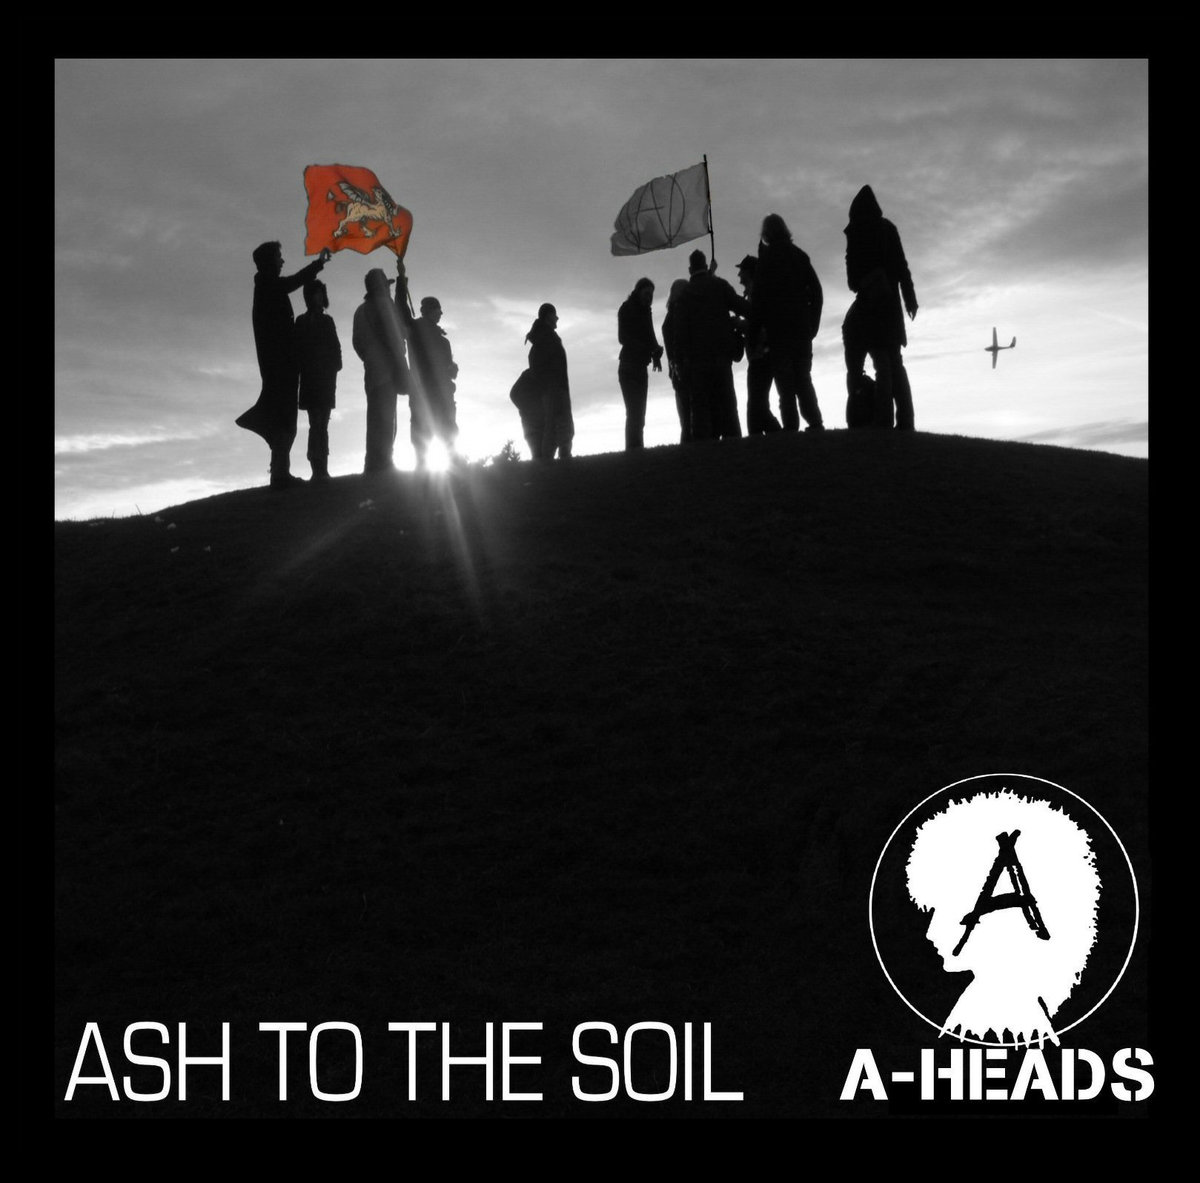 "A-HEADS ""Ash to the soil"" LP"